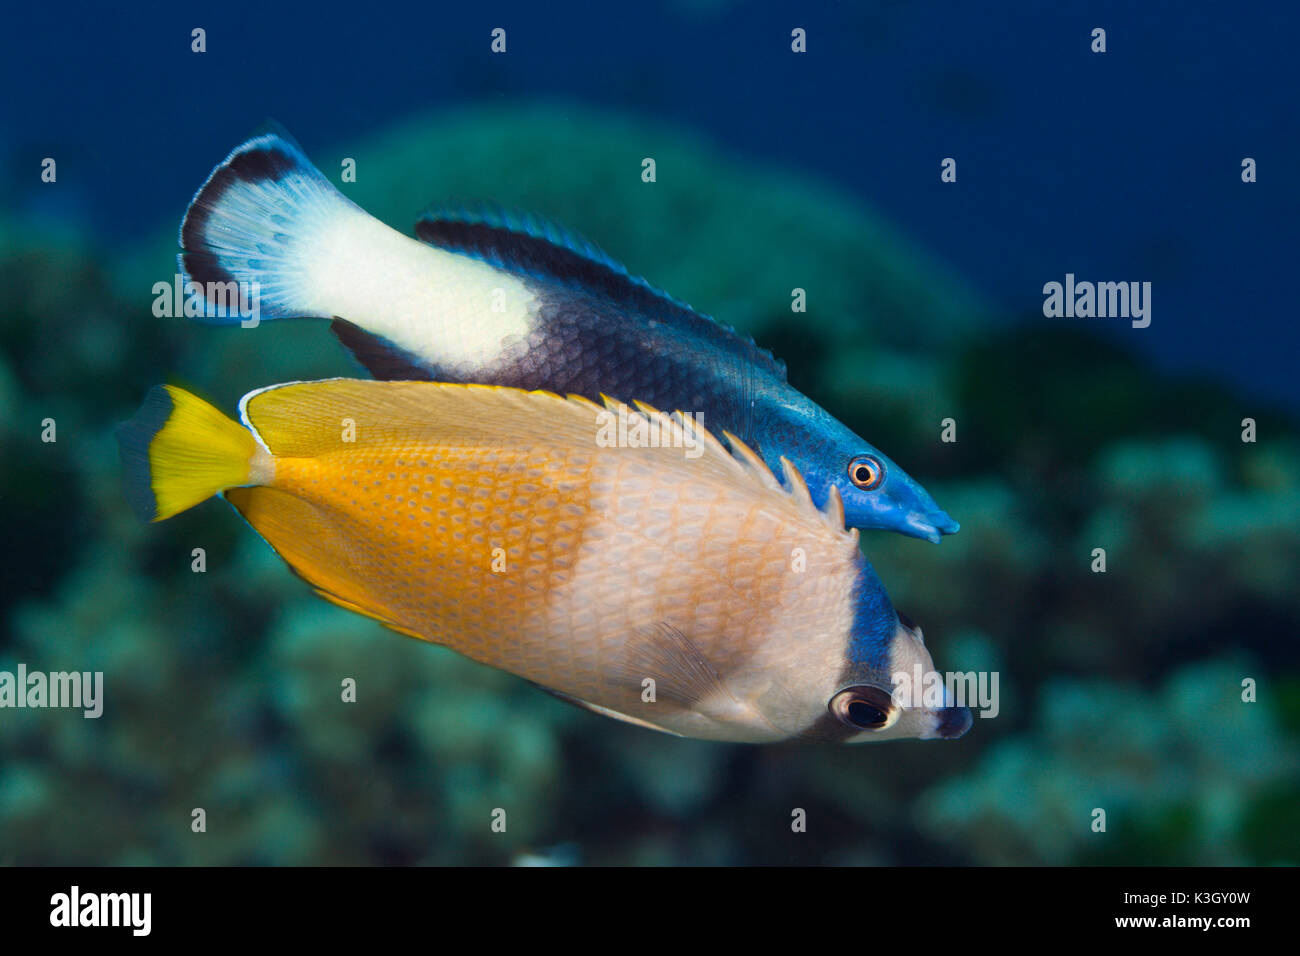 Kleins Butterflyfish and Bicolor Cleaner Wrasse, Chaetodon kleinii, Labroides bicolor, Great Barrier Reef, Australia - Stock Image